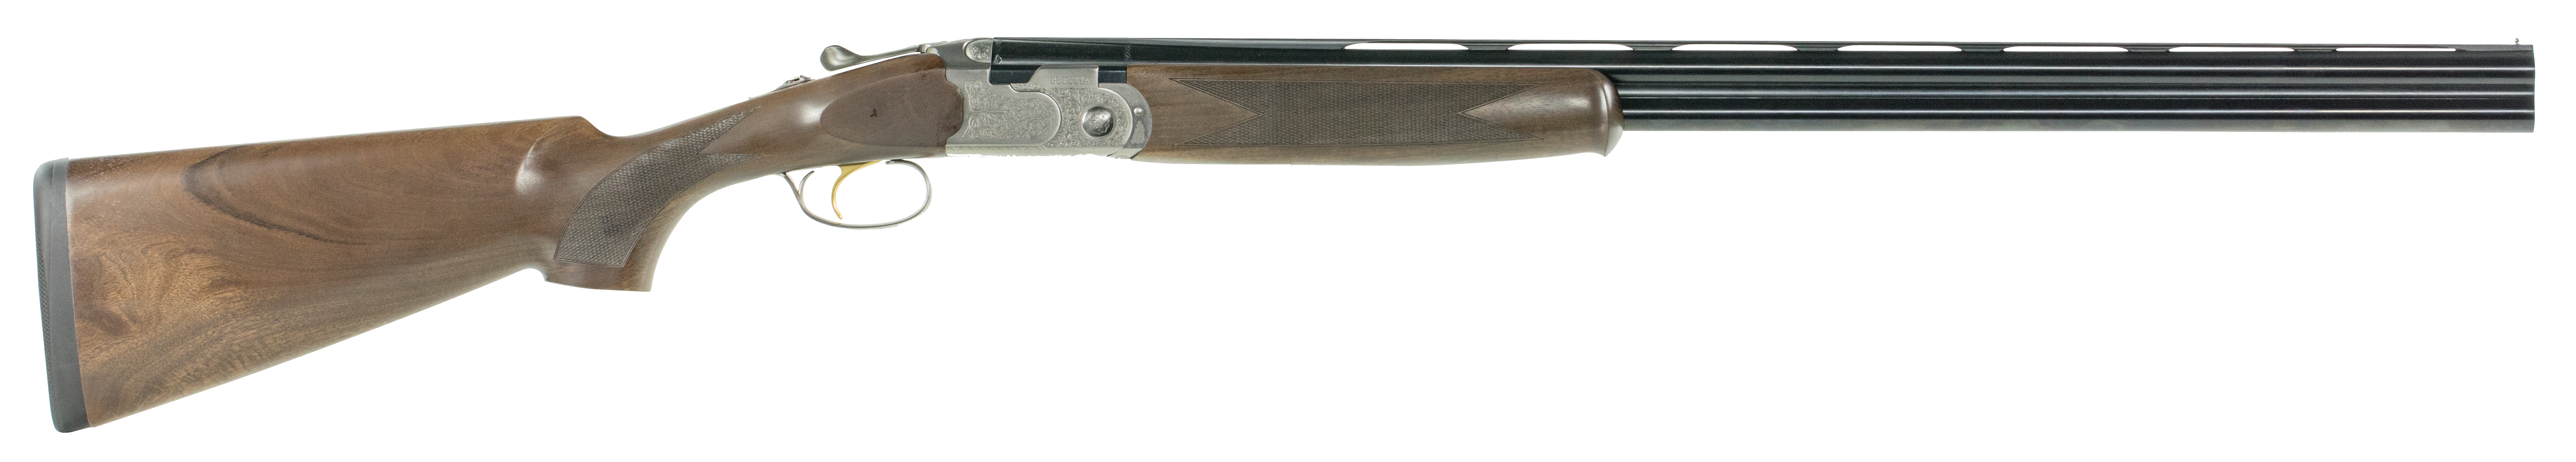 Beretta 686 Silver Pigeon I Combo Over/Under Shotgun 3'' 28 Gauge/410 Bore 28'' Silver Engraved - Walnut